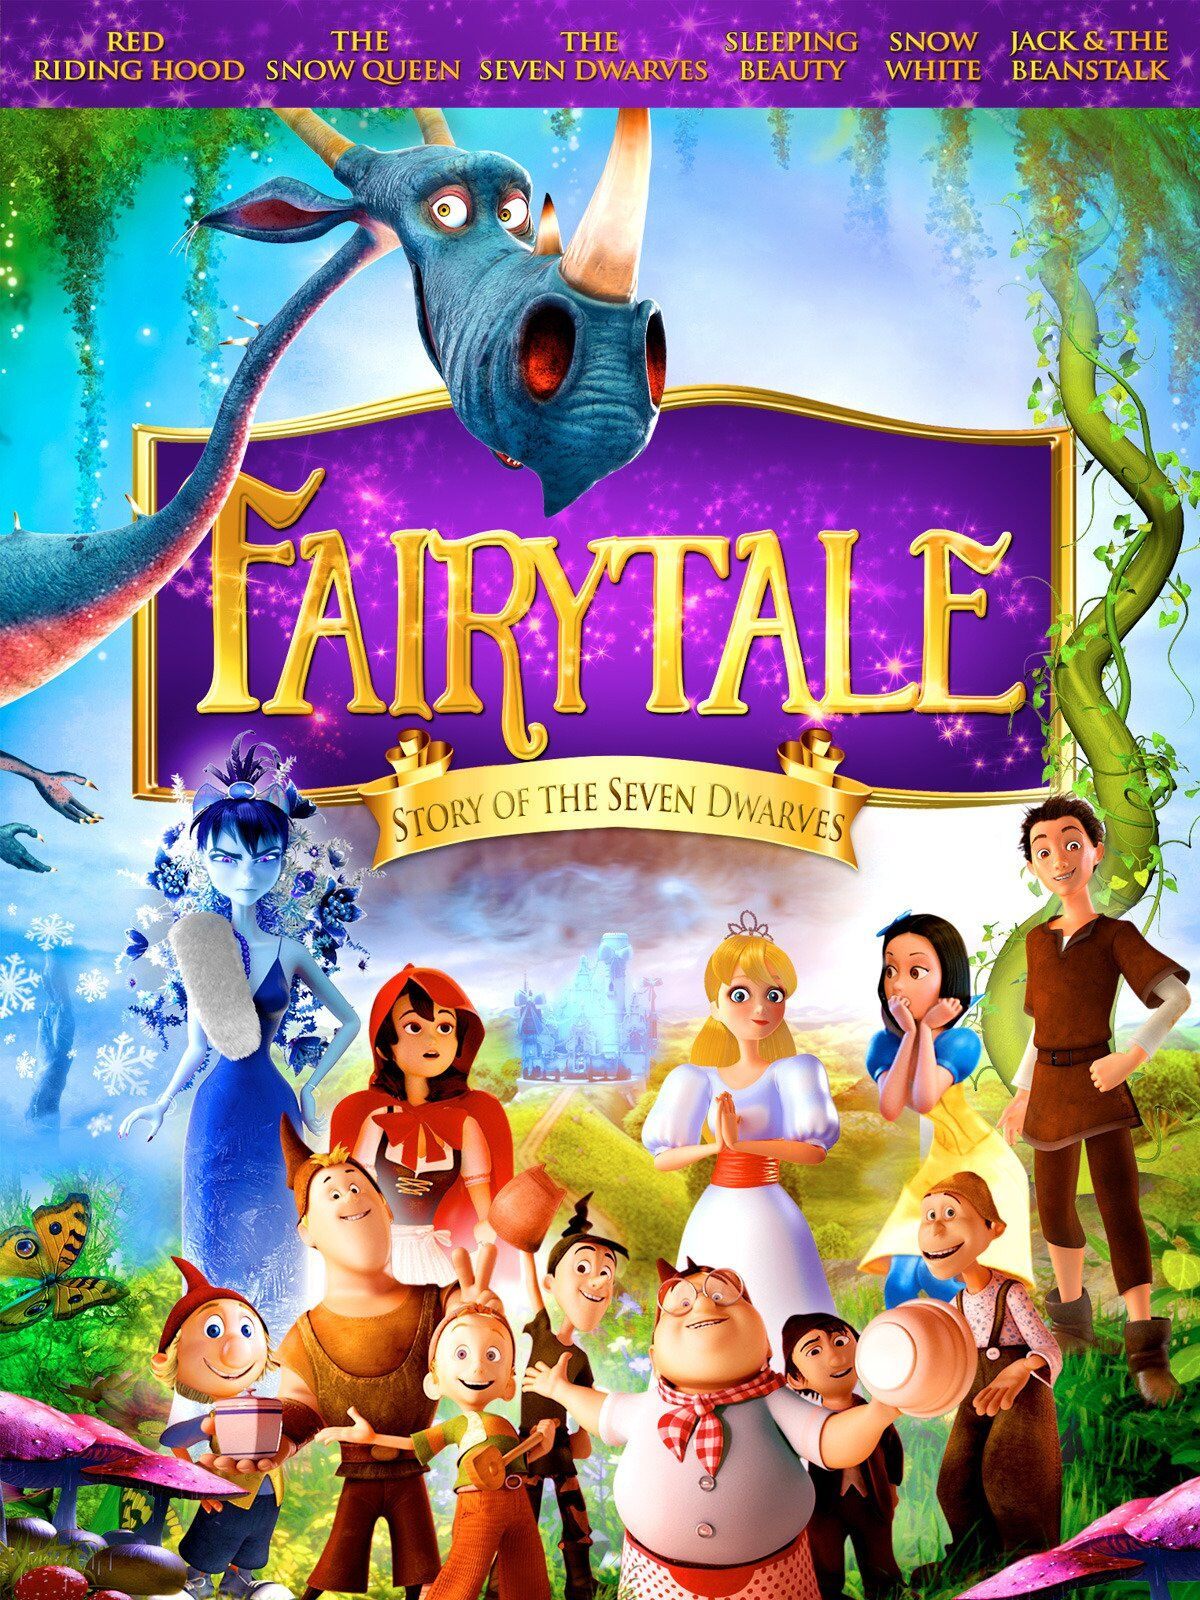 Fairytale: Story of the Seven Dwarves (2015)